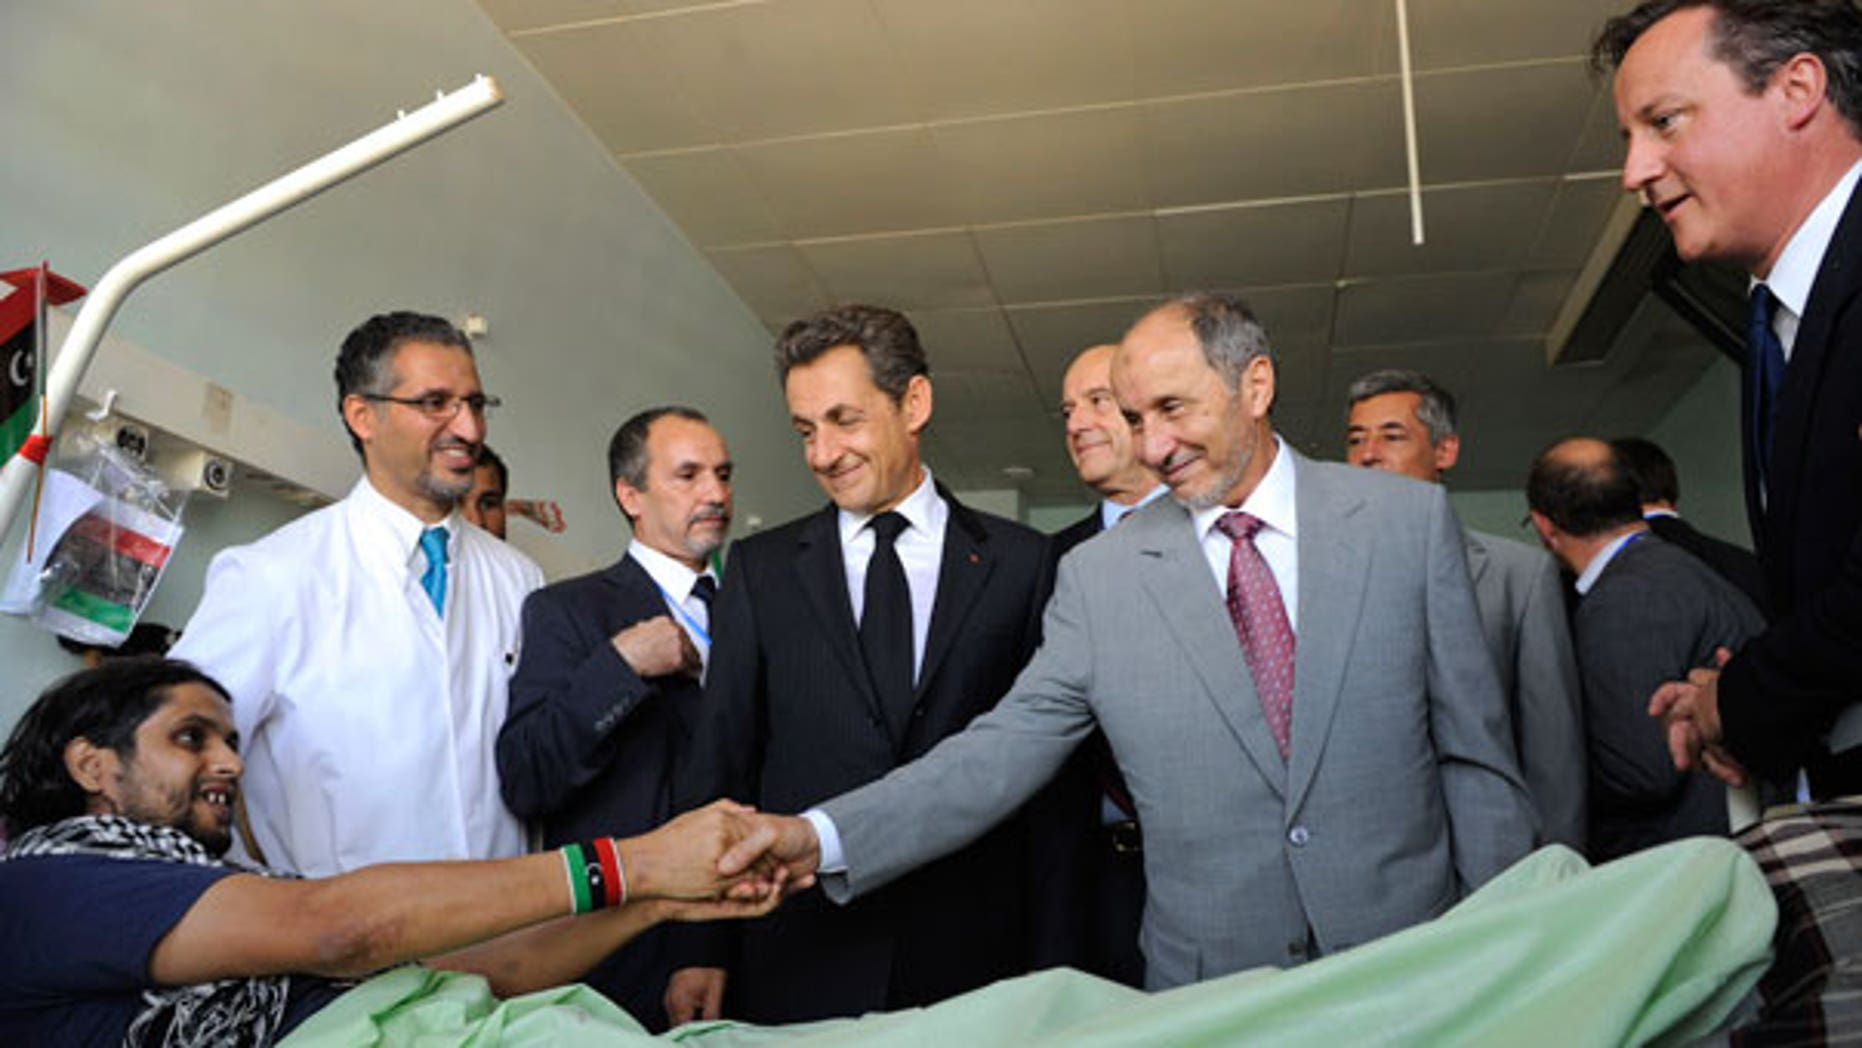 Sept. 15: Leader of Libya's interim government, Mustafa Abdul-Jalil shakes hands with with an unidentified injured man while French President Nicolas Sarkozy, center, and Britain's Prime Minister David Cameron, right, look on in the Tripoli Medical center.